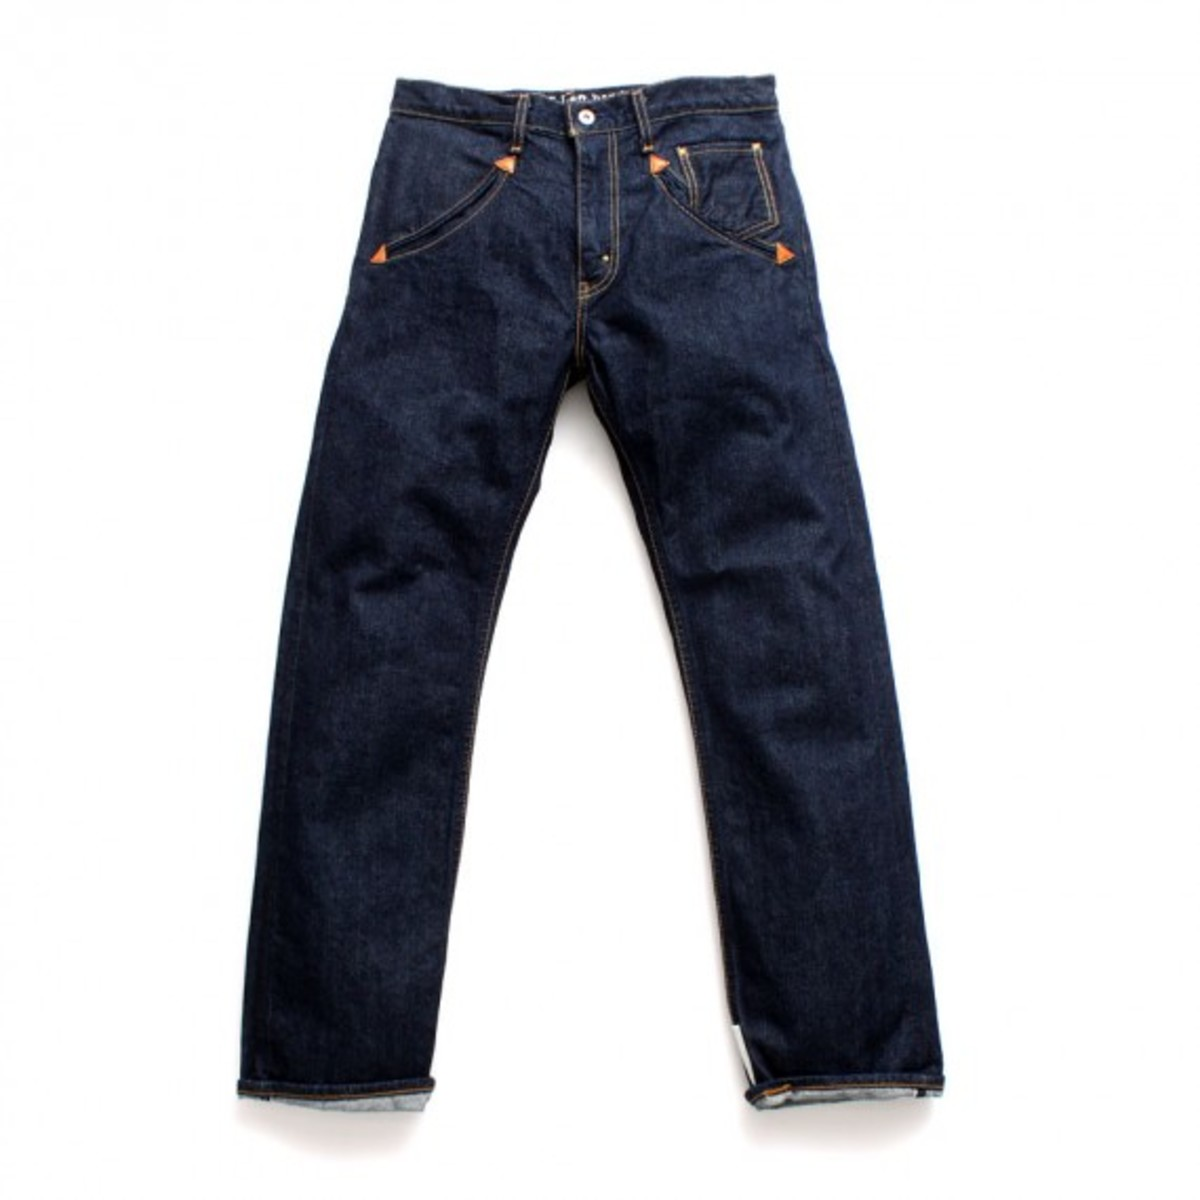 505-jeans-01